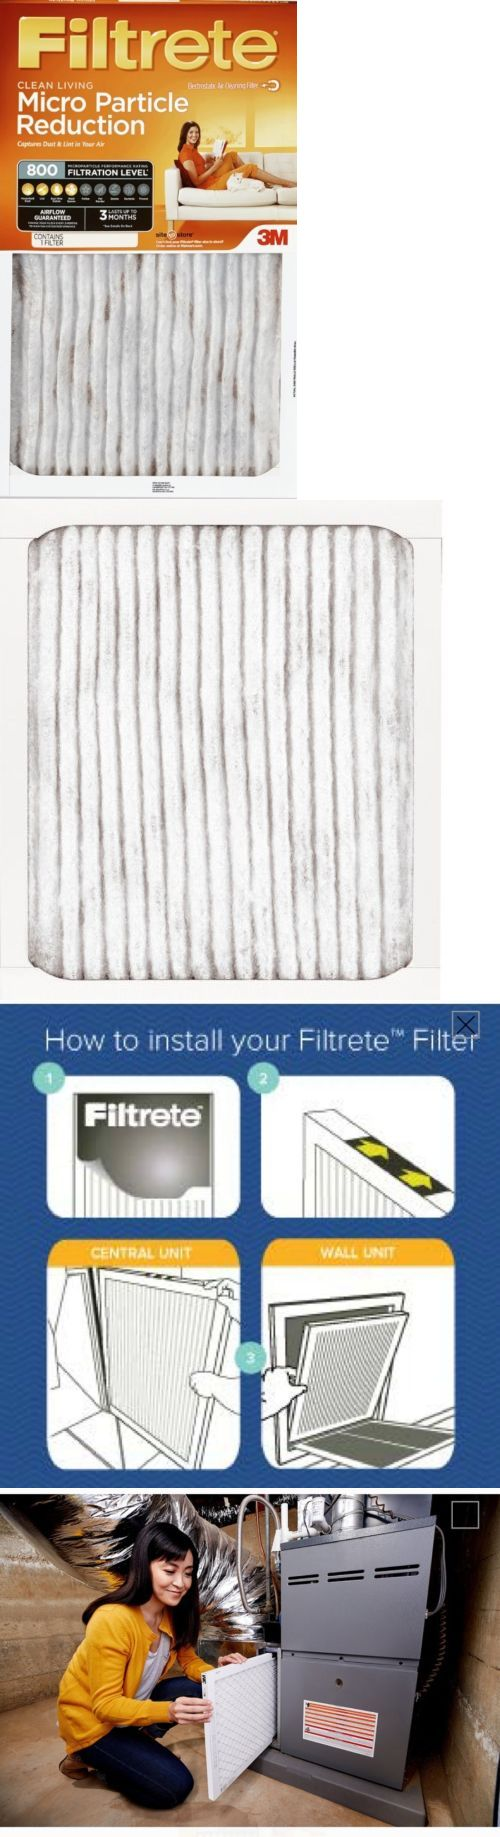 Air Filters 43509 3M Filtrete Micro Particle Reduction